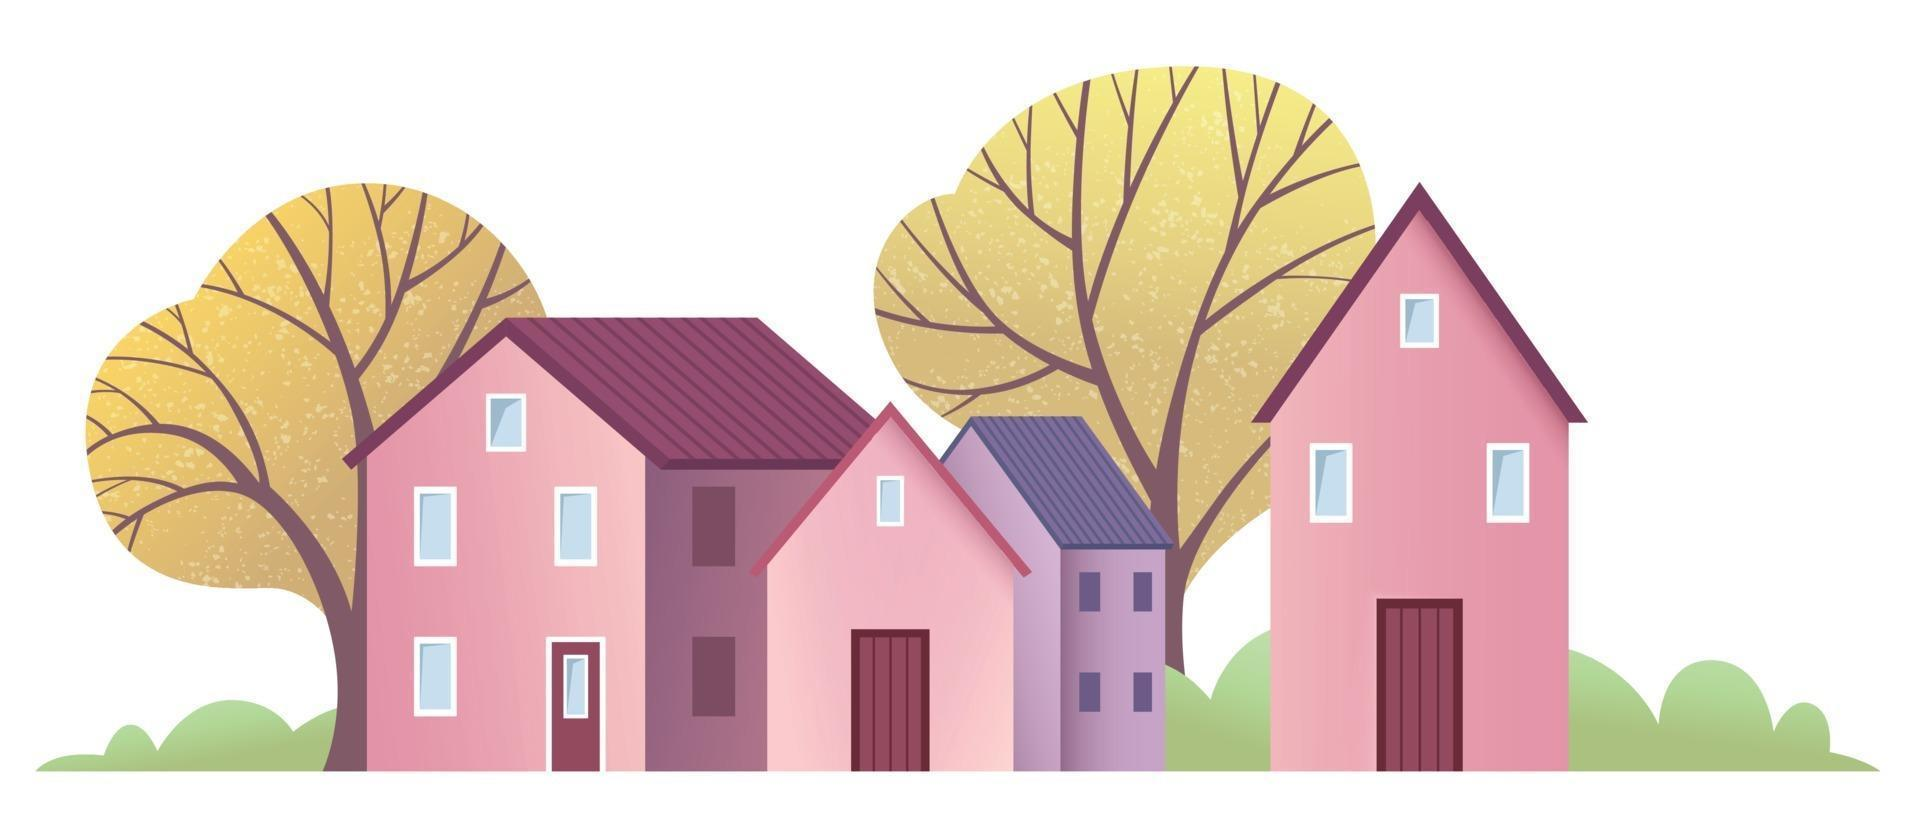 Small town with cute pink and purple houses with autumn trees vector